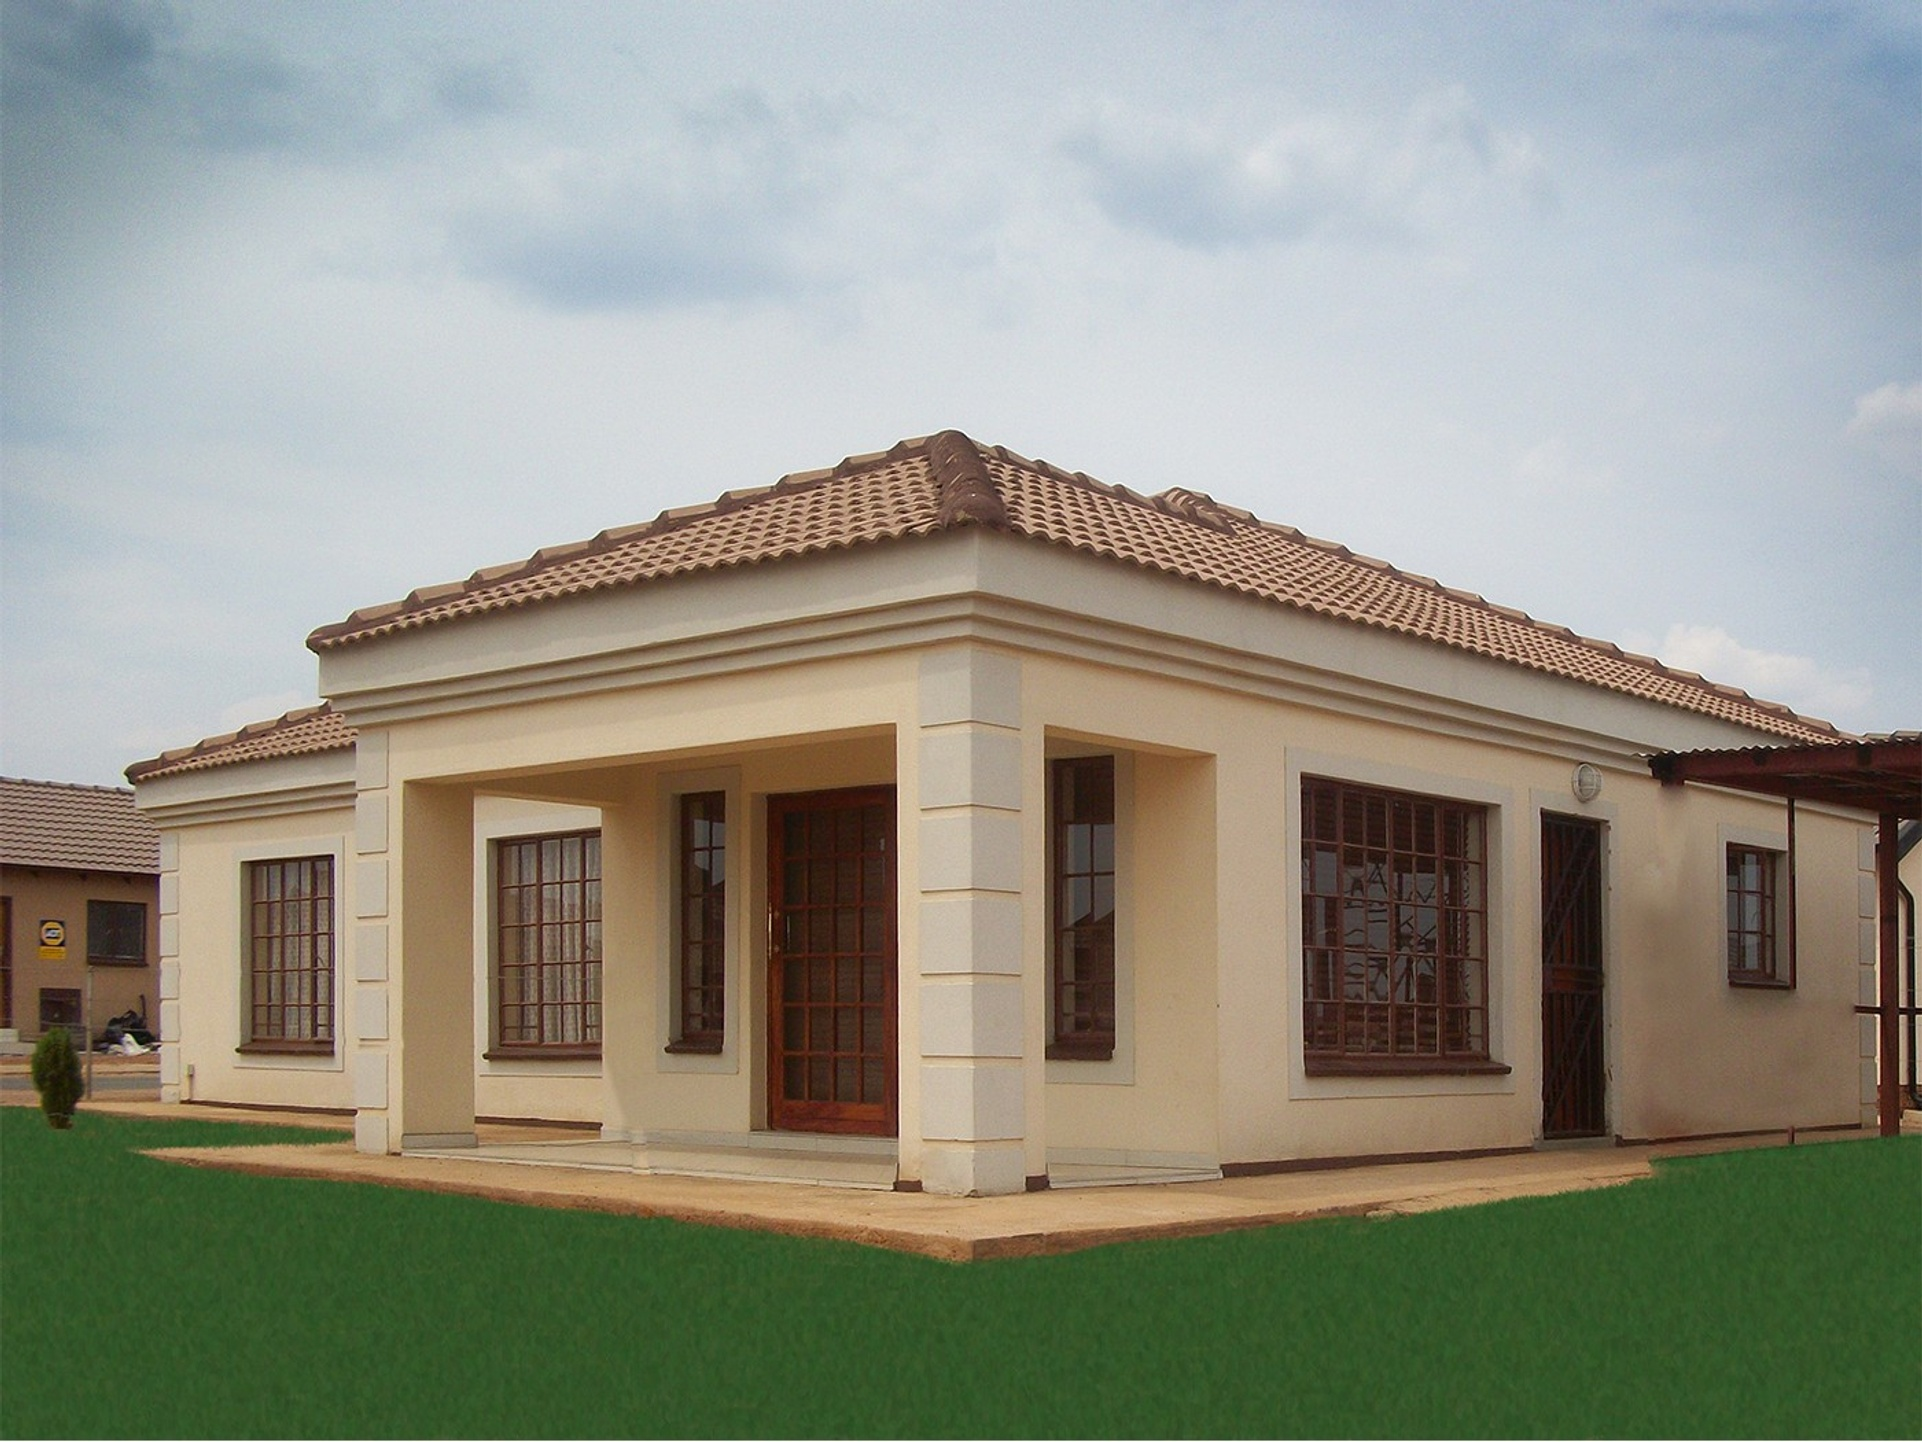 3 bedroom tuscan house plans in south africa for Modern south african home designs